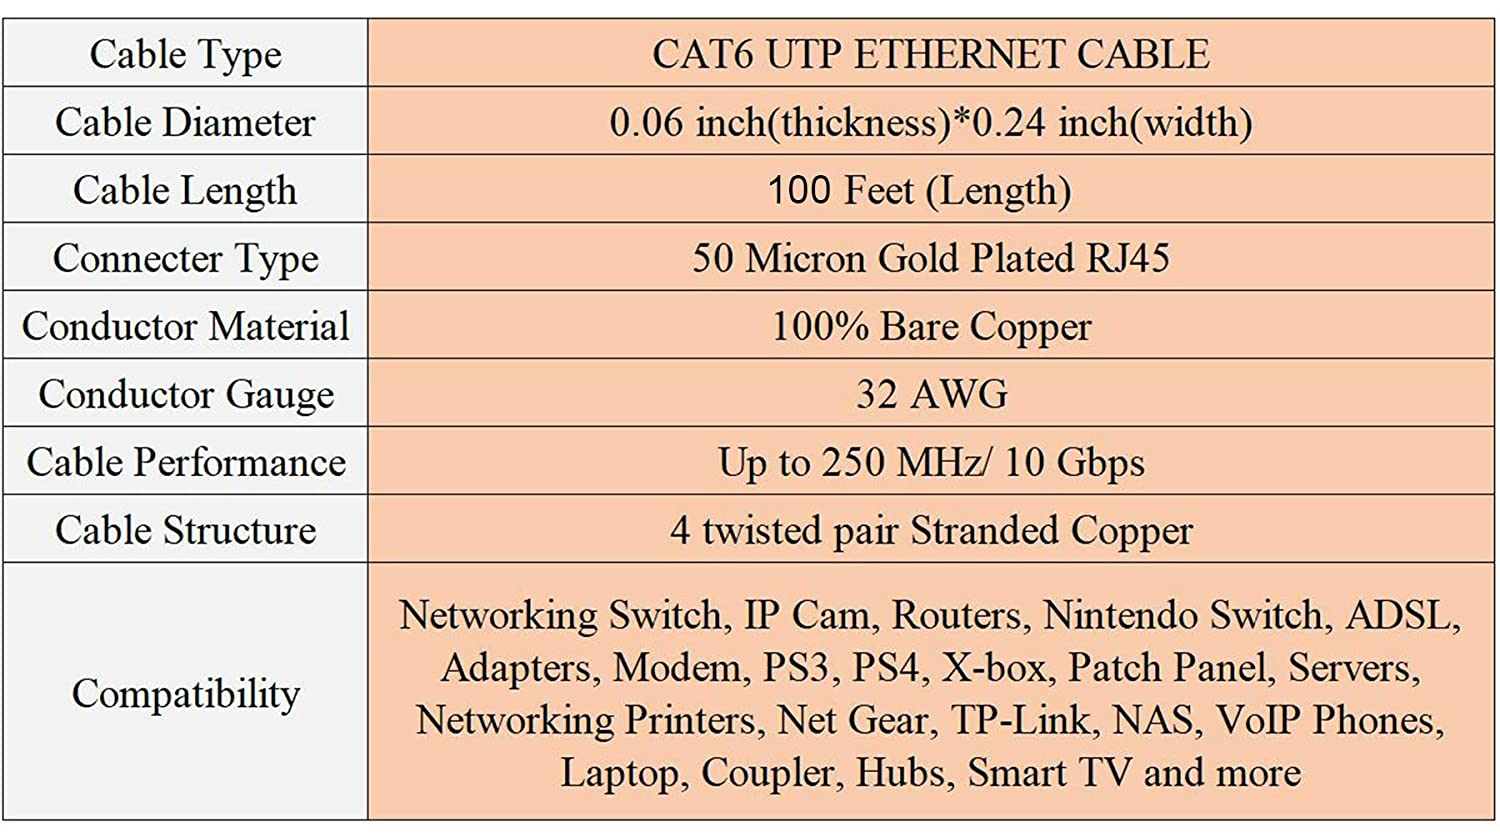 Slim Long Flat Computer Internet Patch Cord Wire With clips /& Rj45 Connectors for Router 50 feet 2 pack black DAYEDZ Ethernet Cable 50 ft 2 pack Cat 6 LAN Cable Ethernet Cord Faster than Cat5e//Cat5